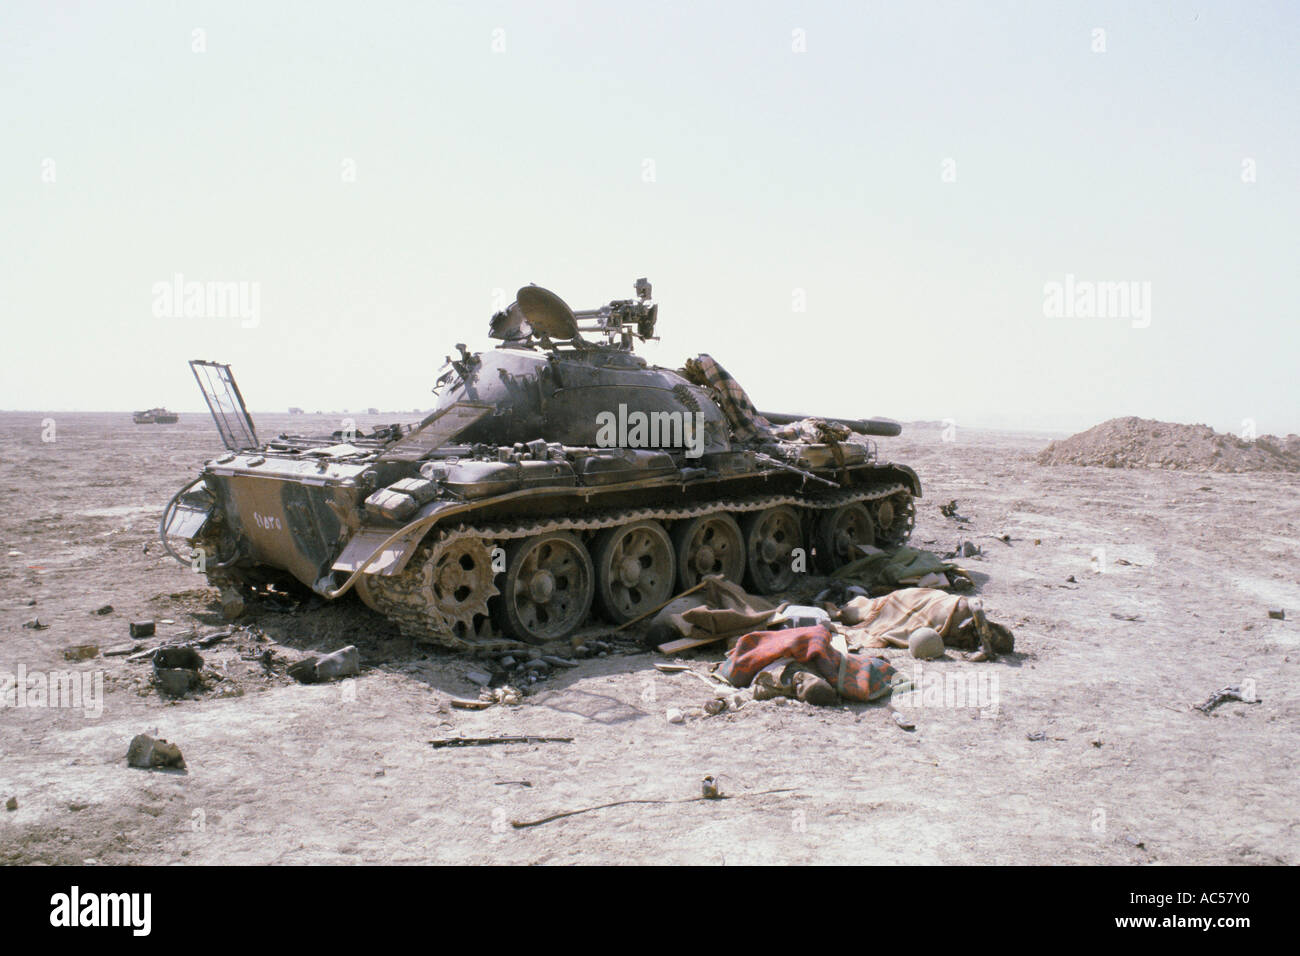 https://c7.alamy.com/comp/AC57Y0/iran-iraq-war-1982-demolished-tank-and-dead-soliders-covered-by-blankets-AC57Y0.jpg